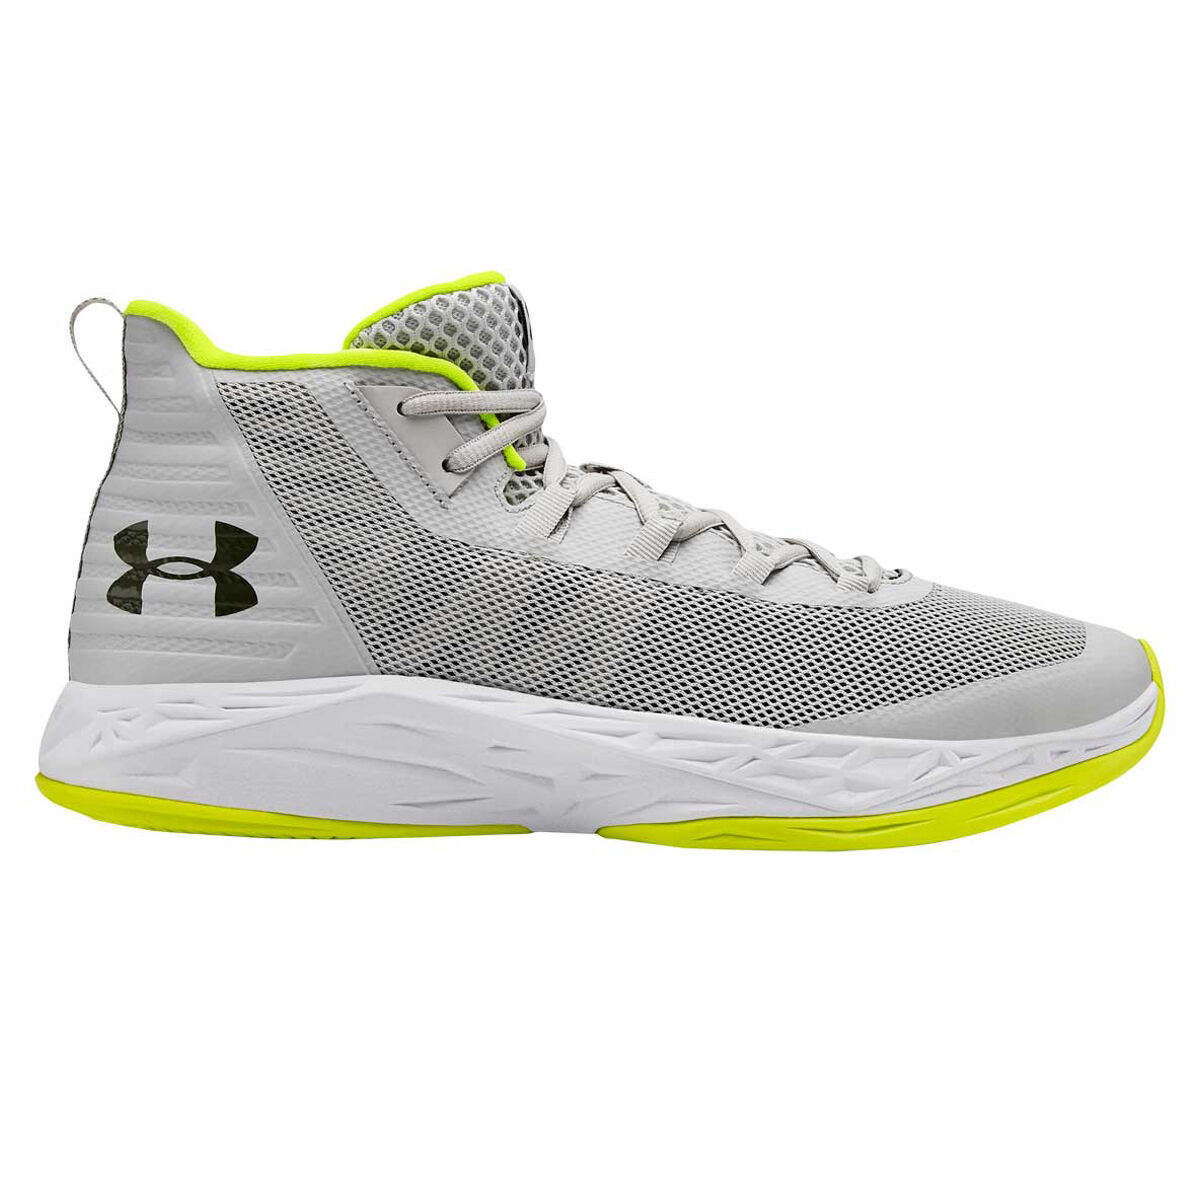 Under Armour Jet Mid Mens Basketball